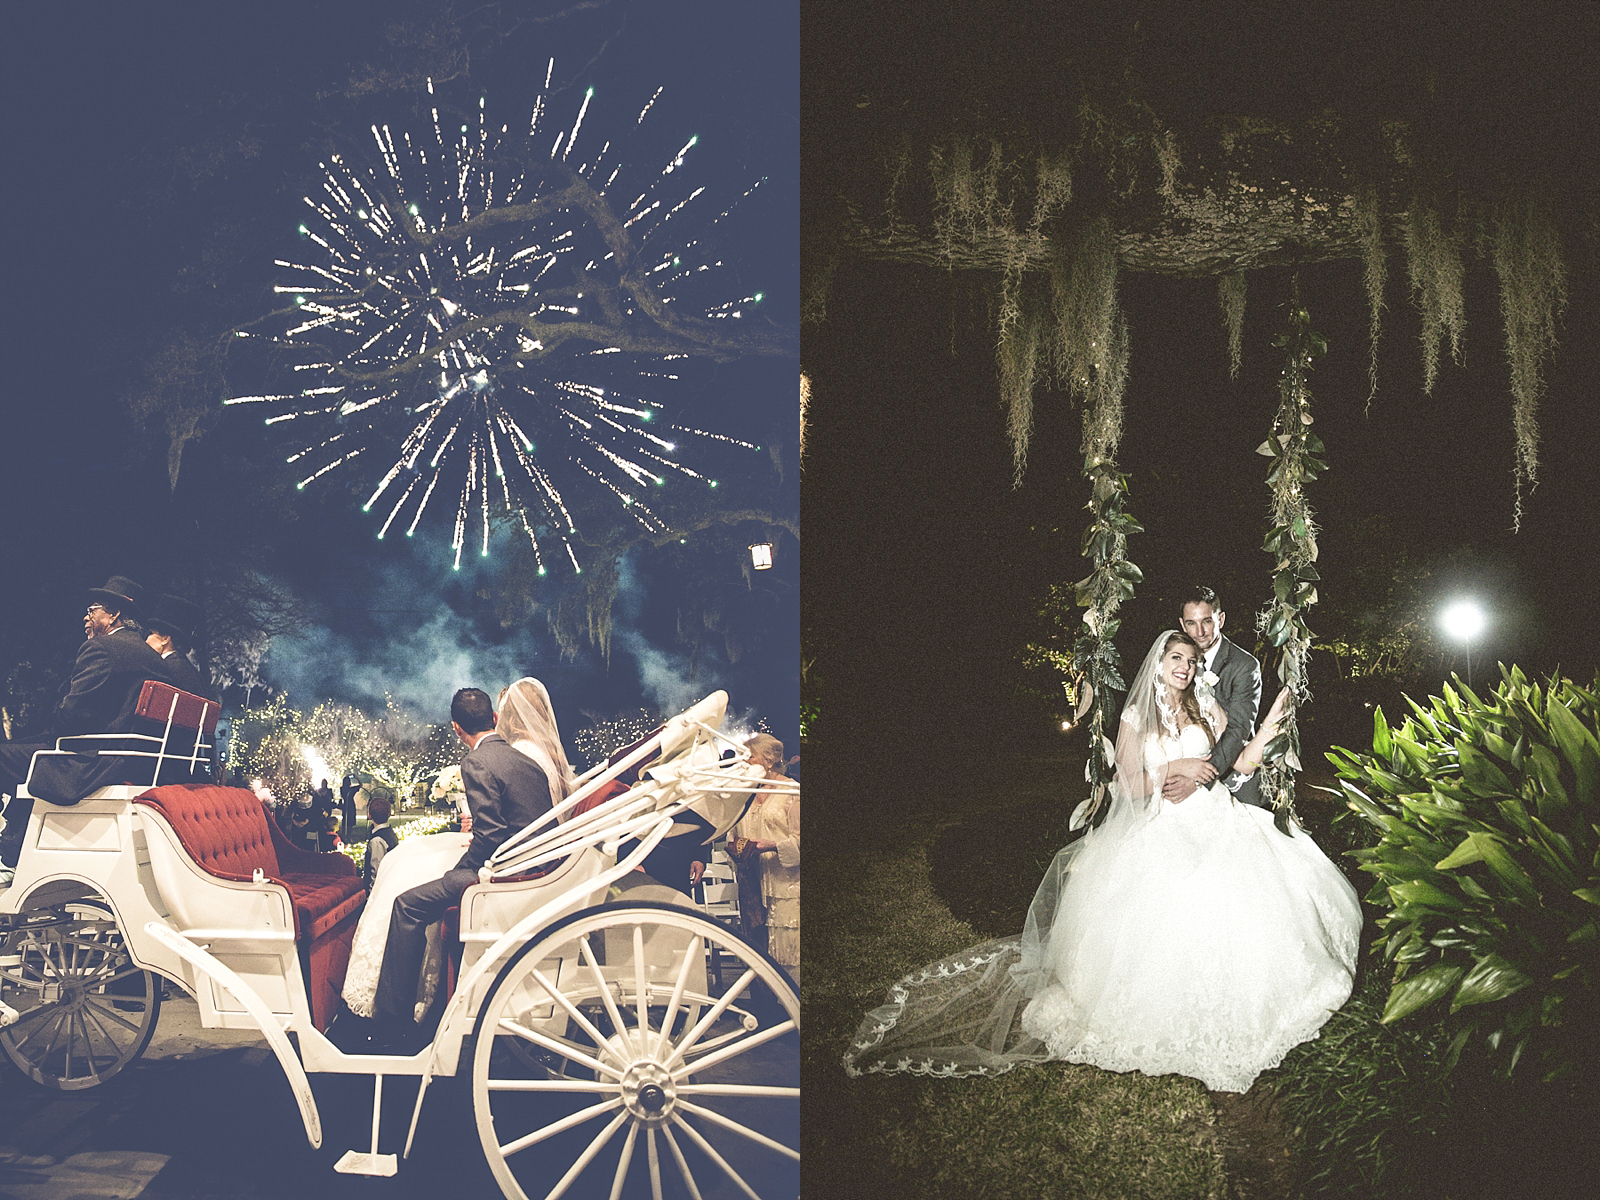 New Orleans Wedding at Southern Oaks Plantation, Featured in Southern Bride. They ended the ceremony with a horse drawn carriage and a firework send off!